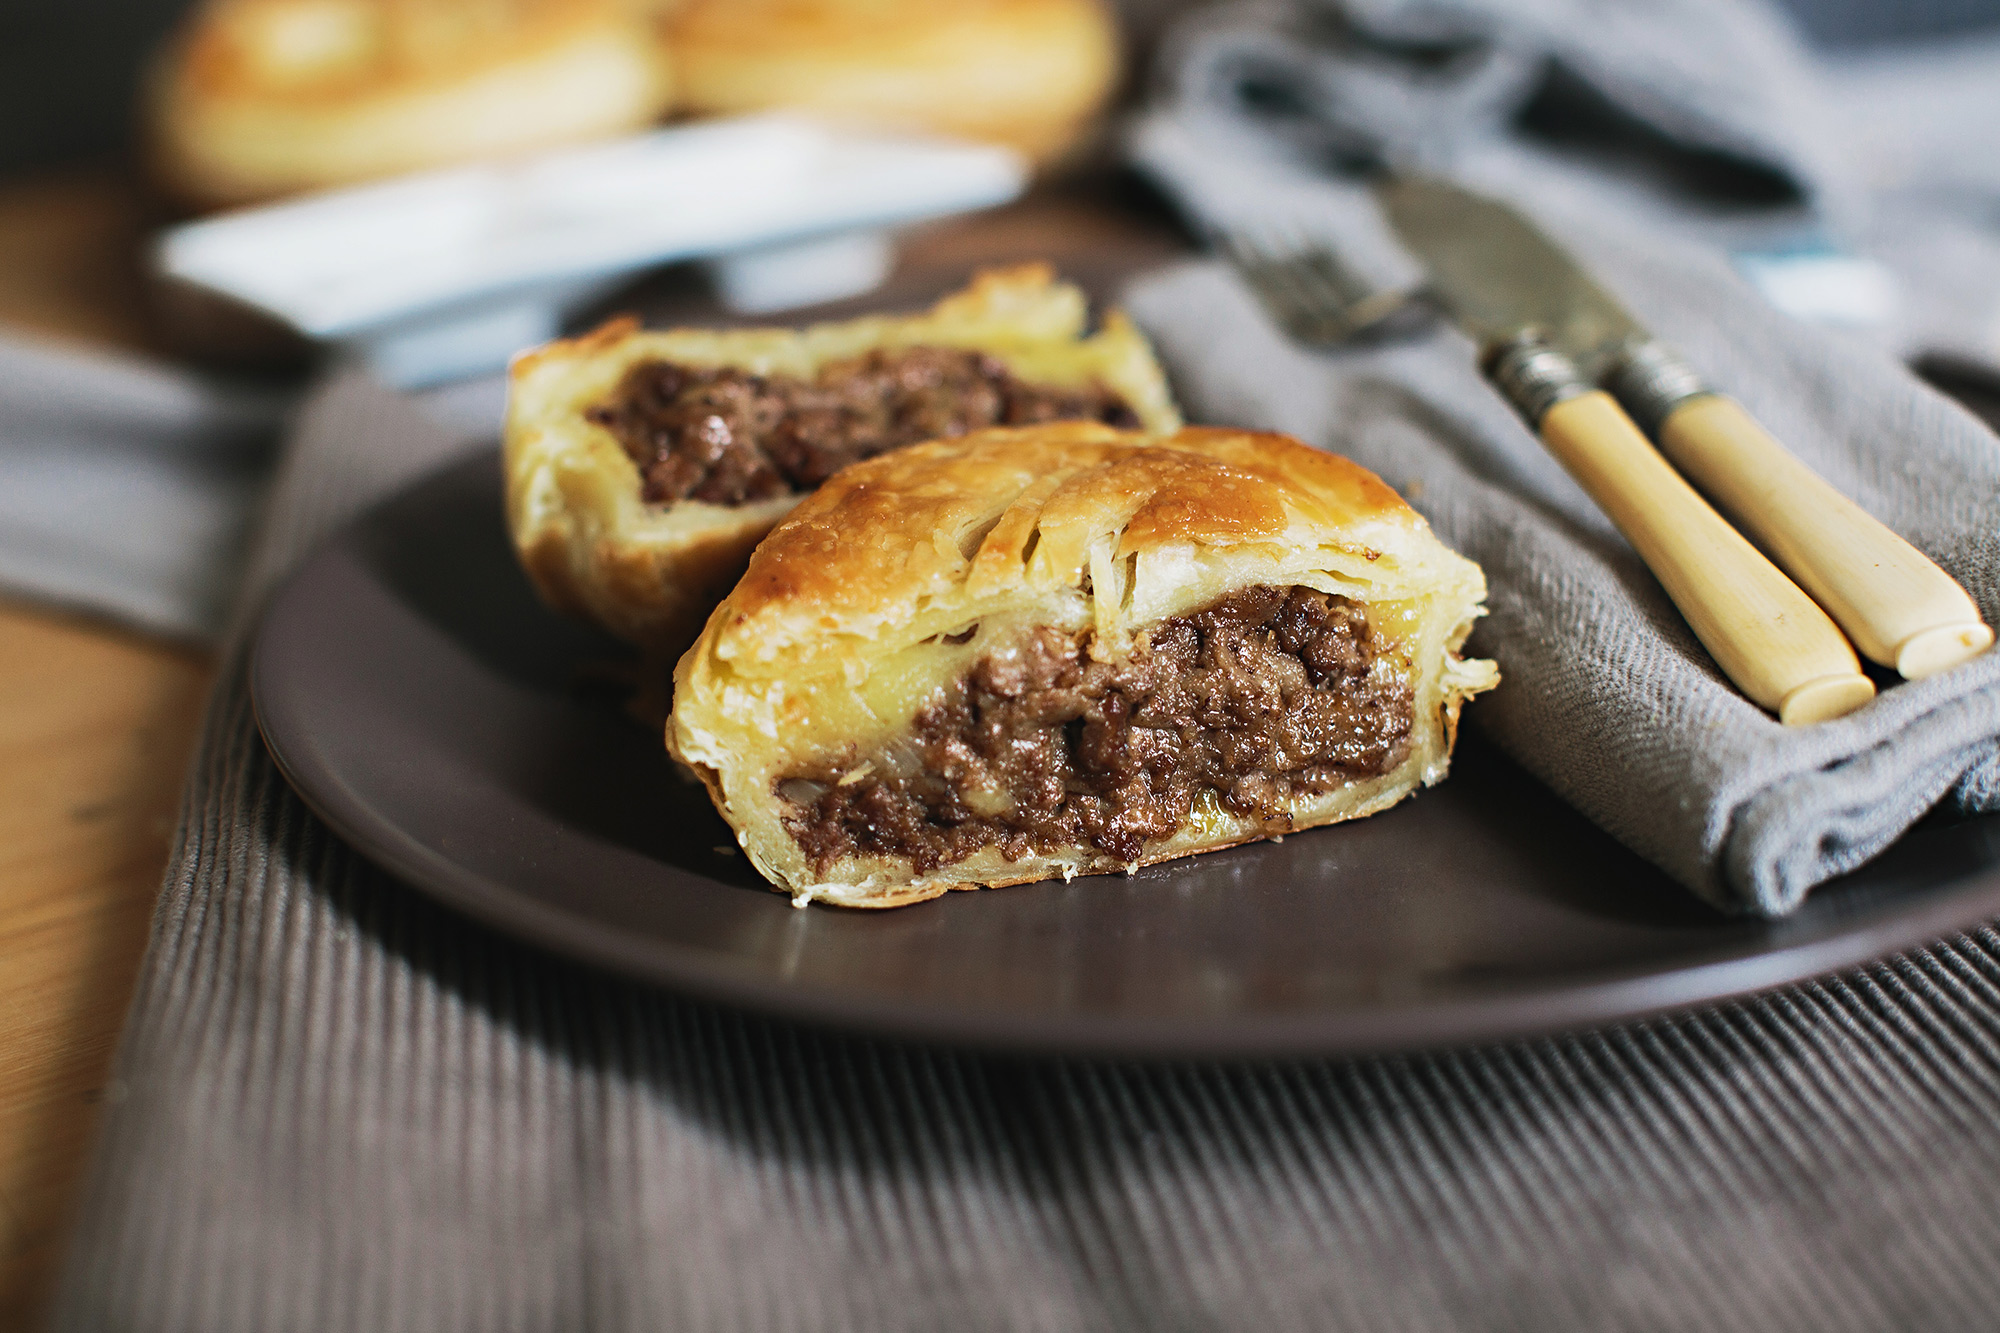 Pie_Mince_Cheese.jpg